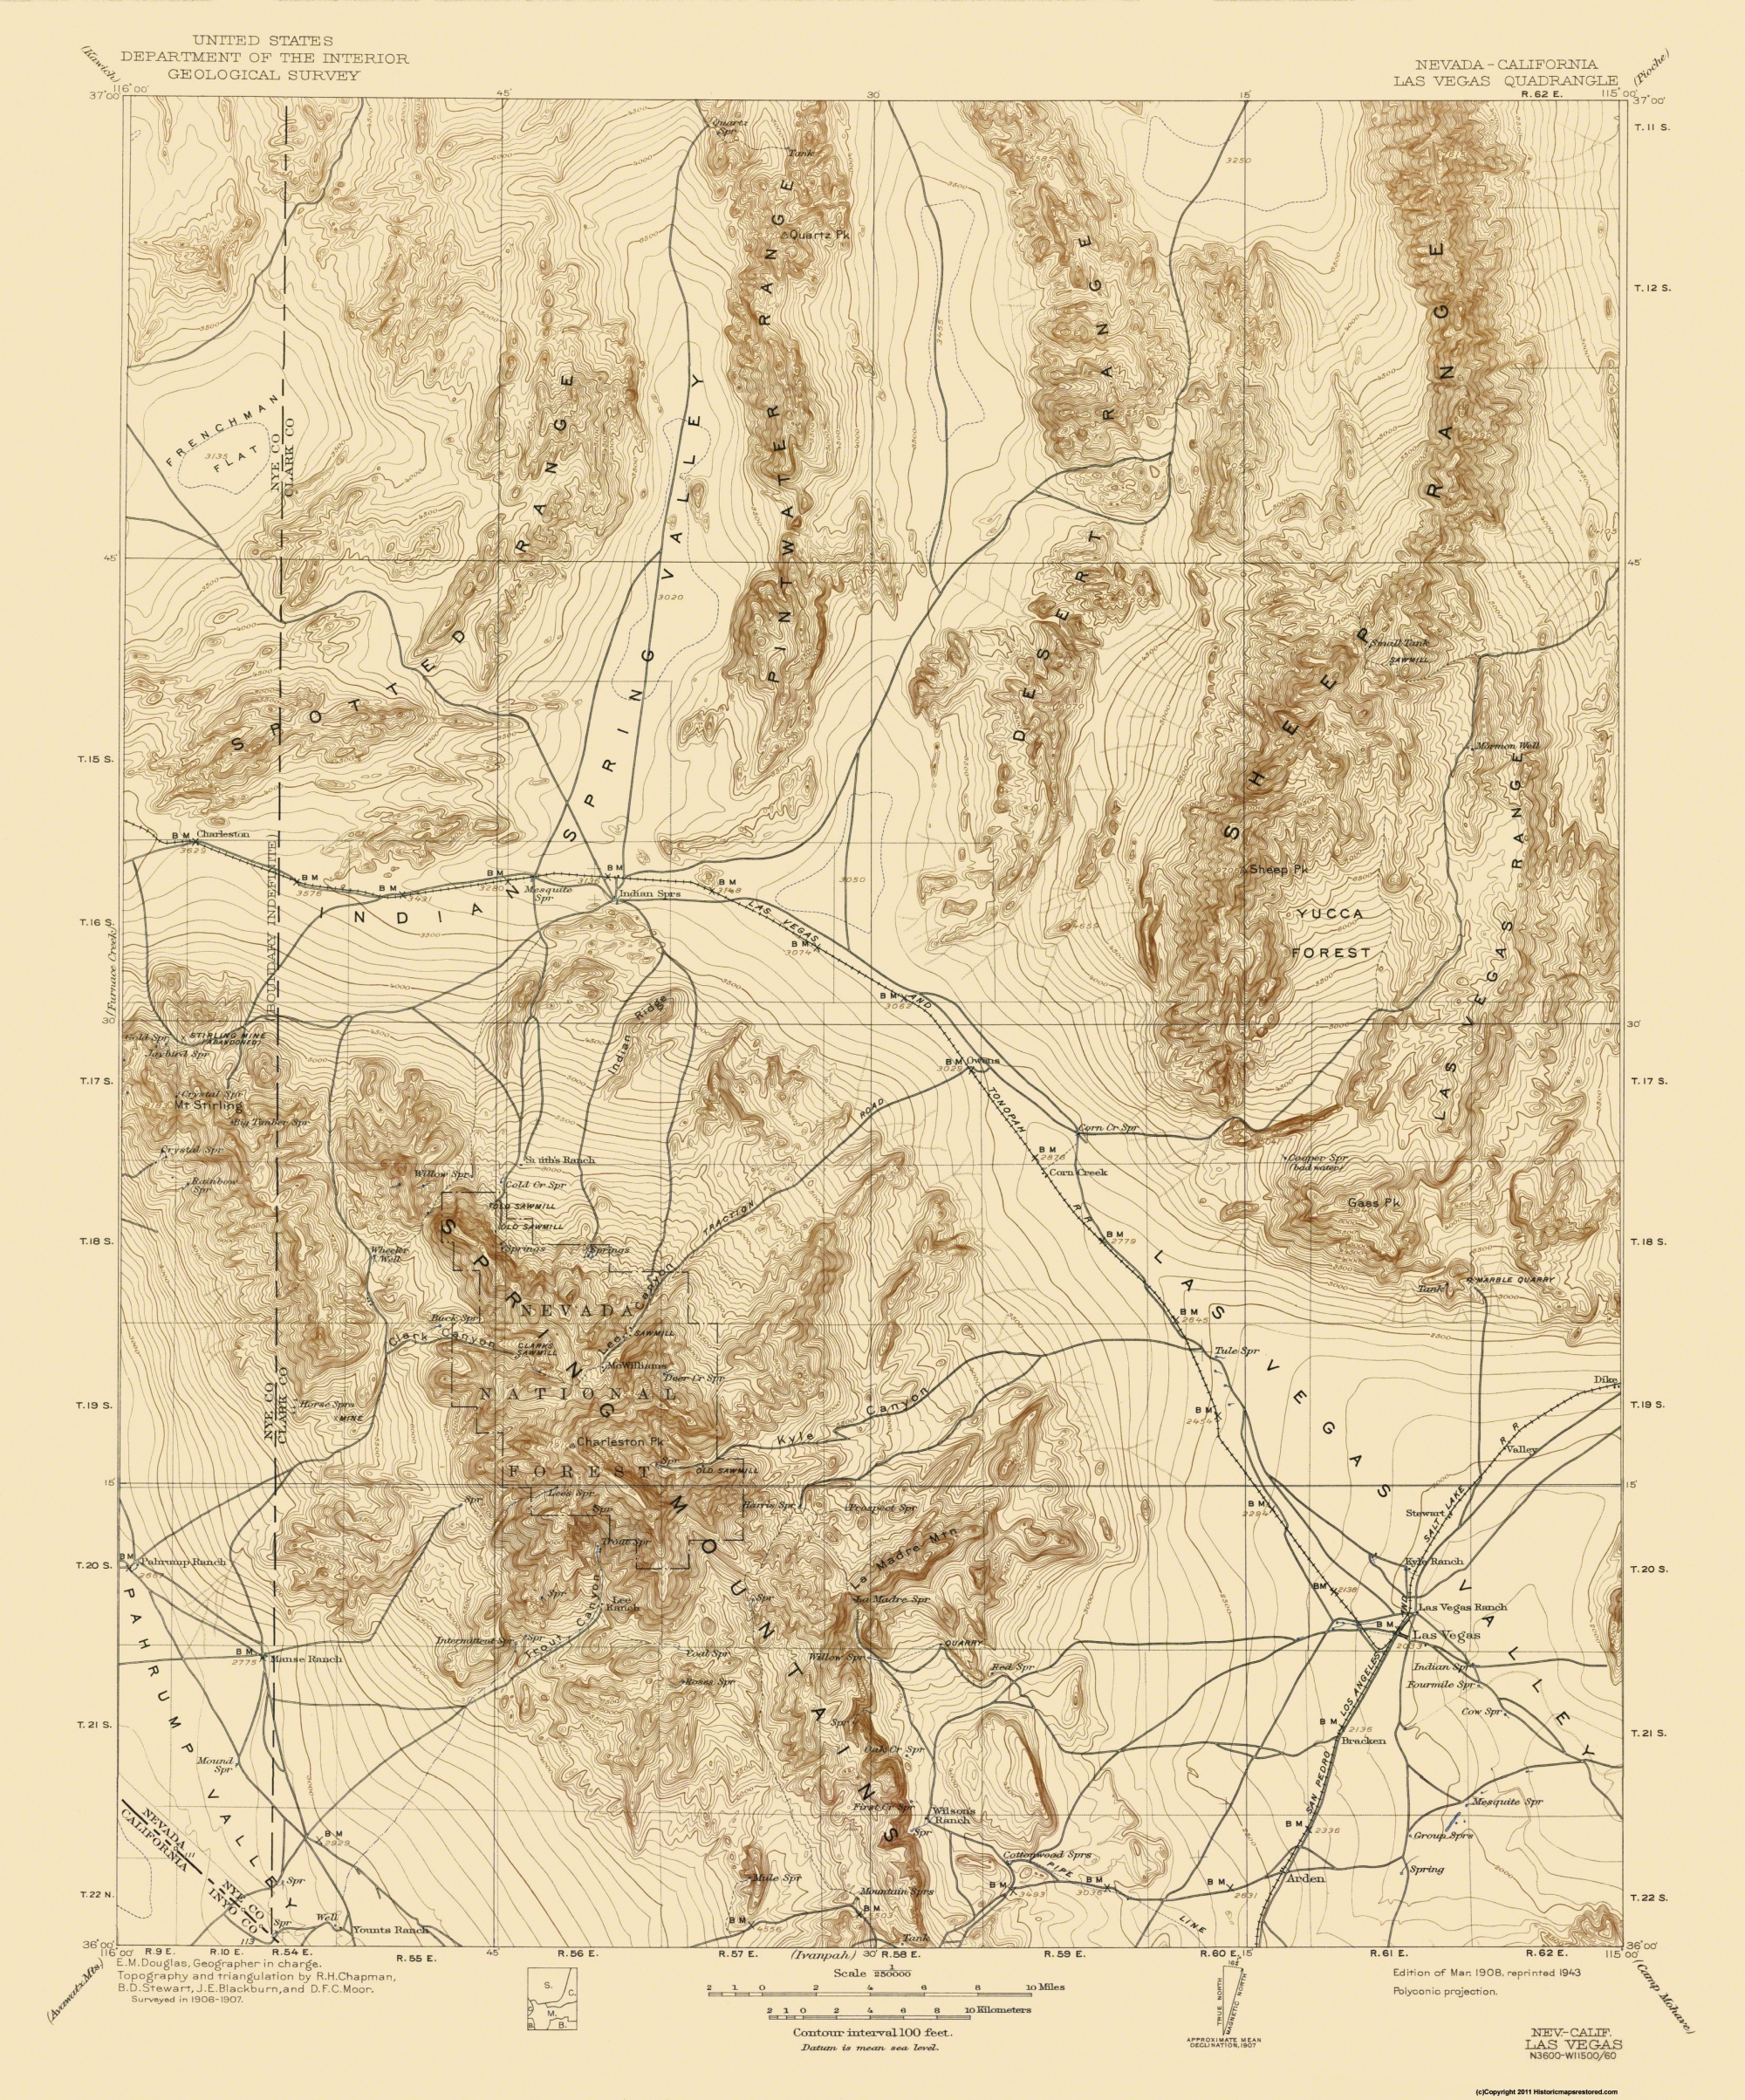 Old Topographical Map - Las Vegas Nevada 1908